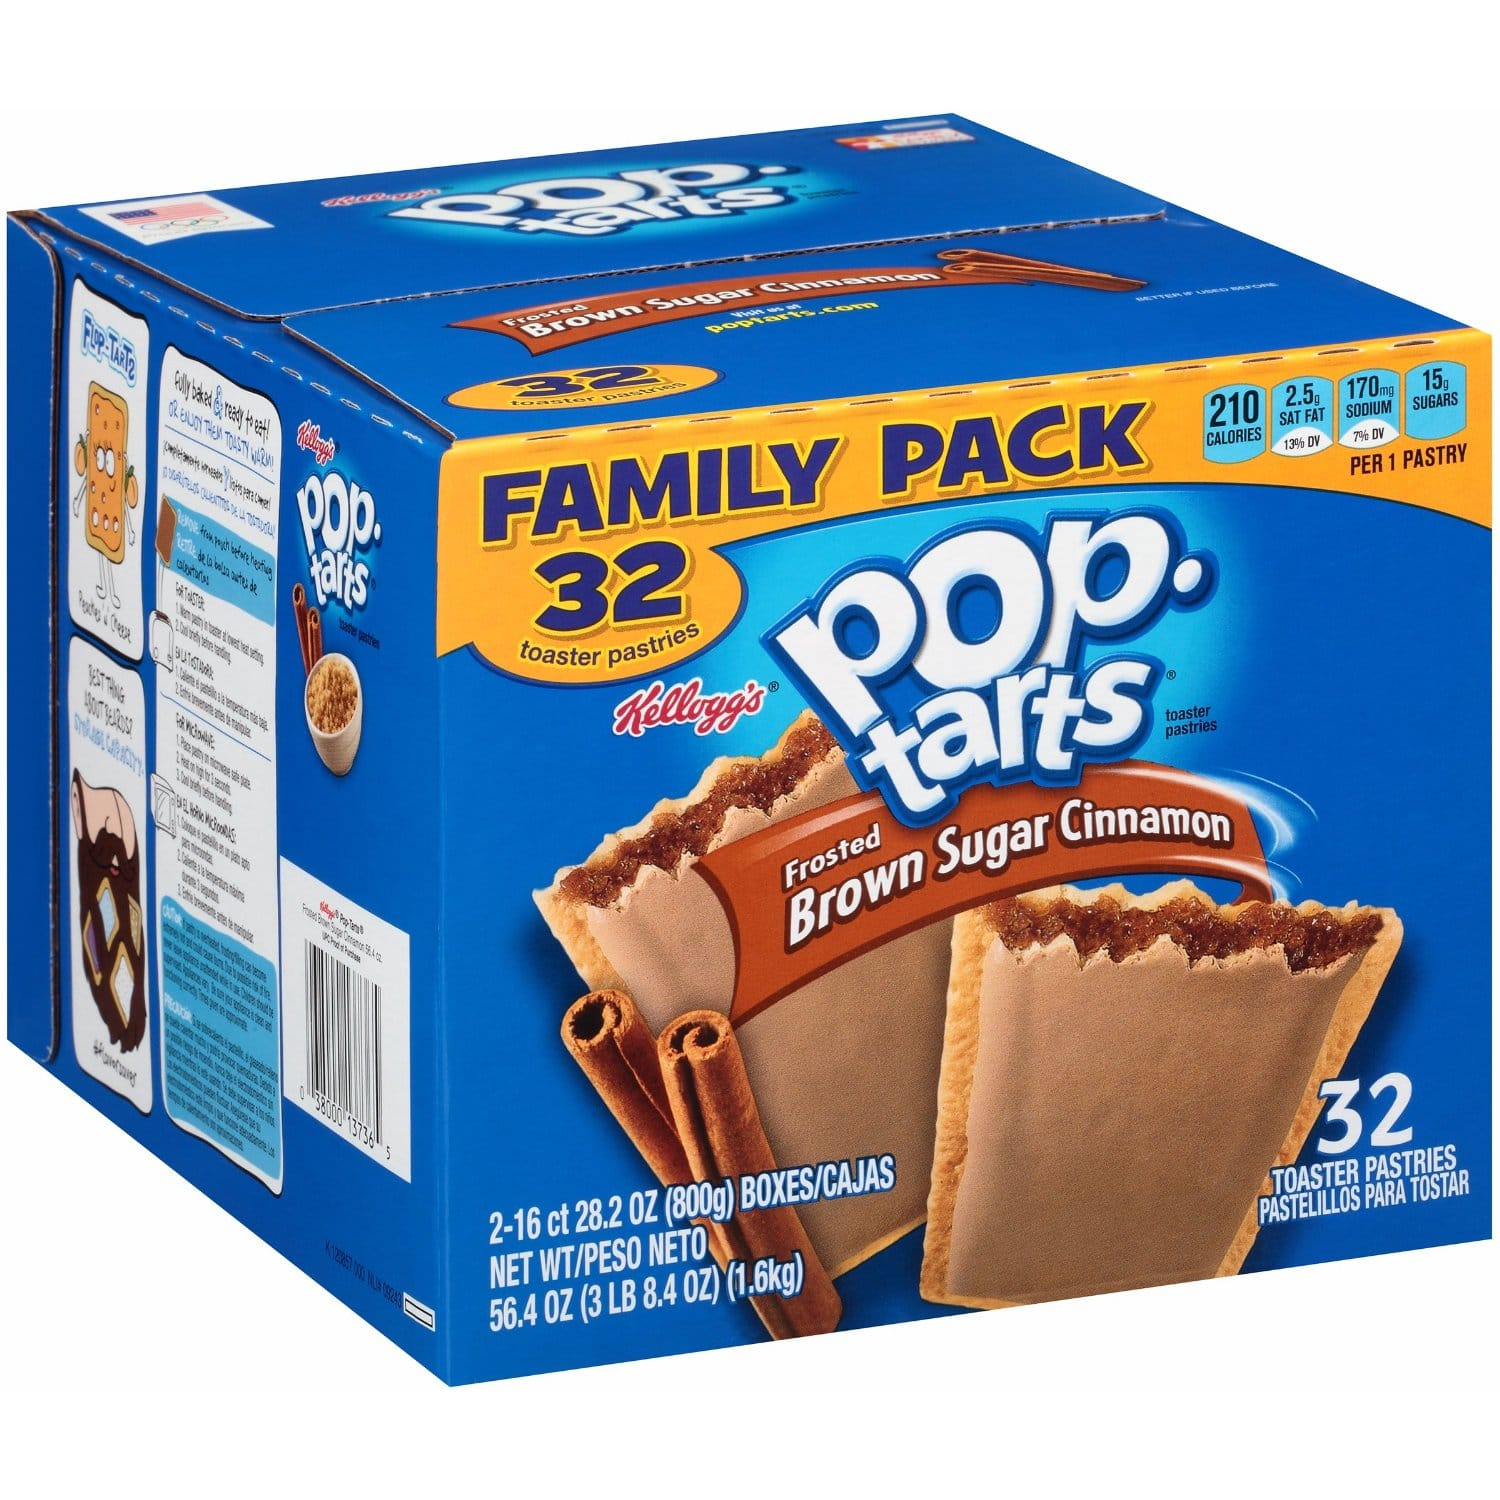 32-Count Frosted Pop-Tarts (Brown Sugar Cinnamon)  $5.30 + Free Shipping